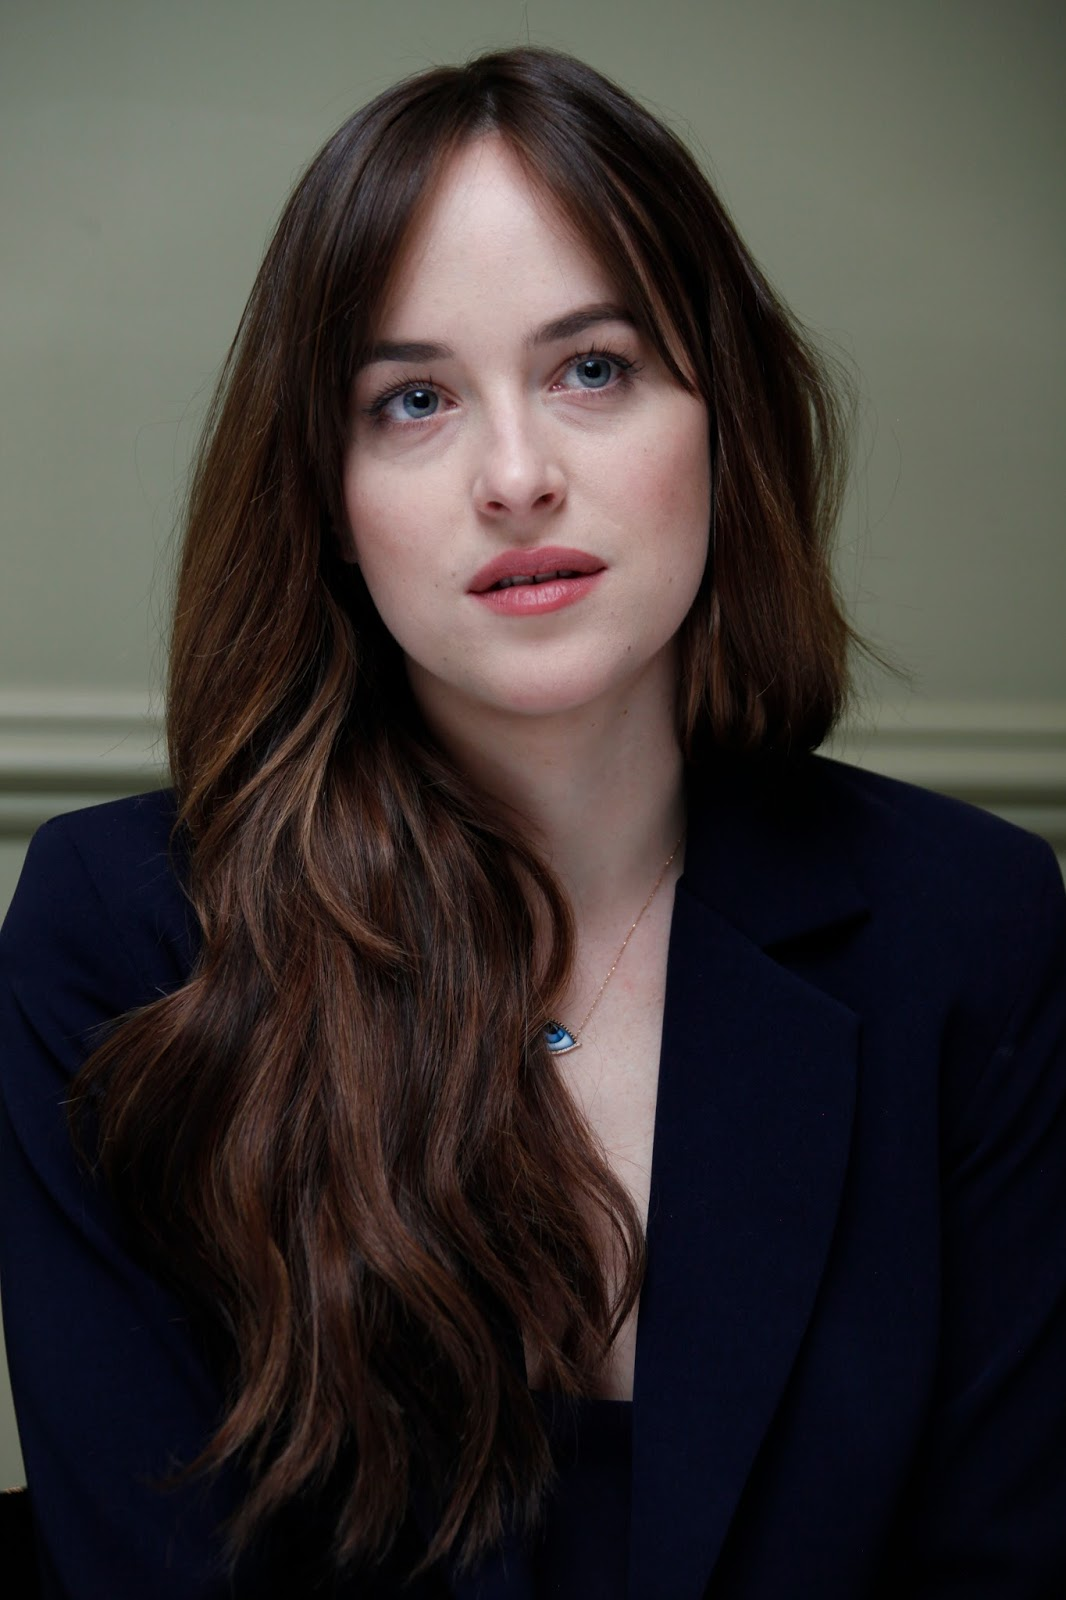 dakota johnson - photo #1